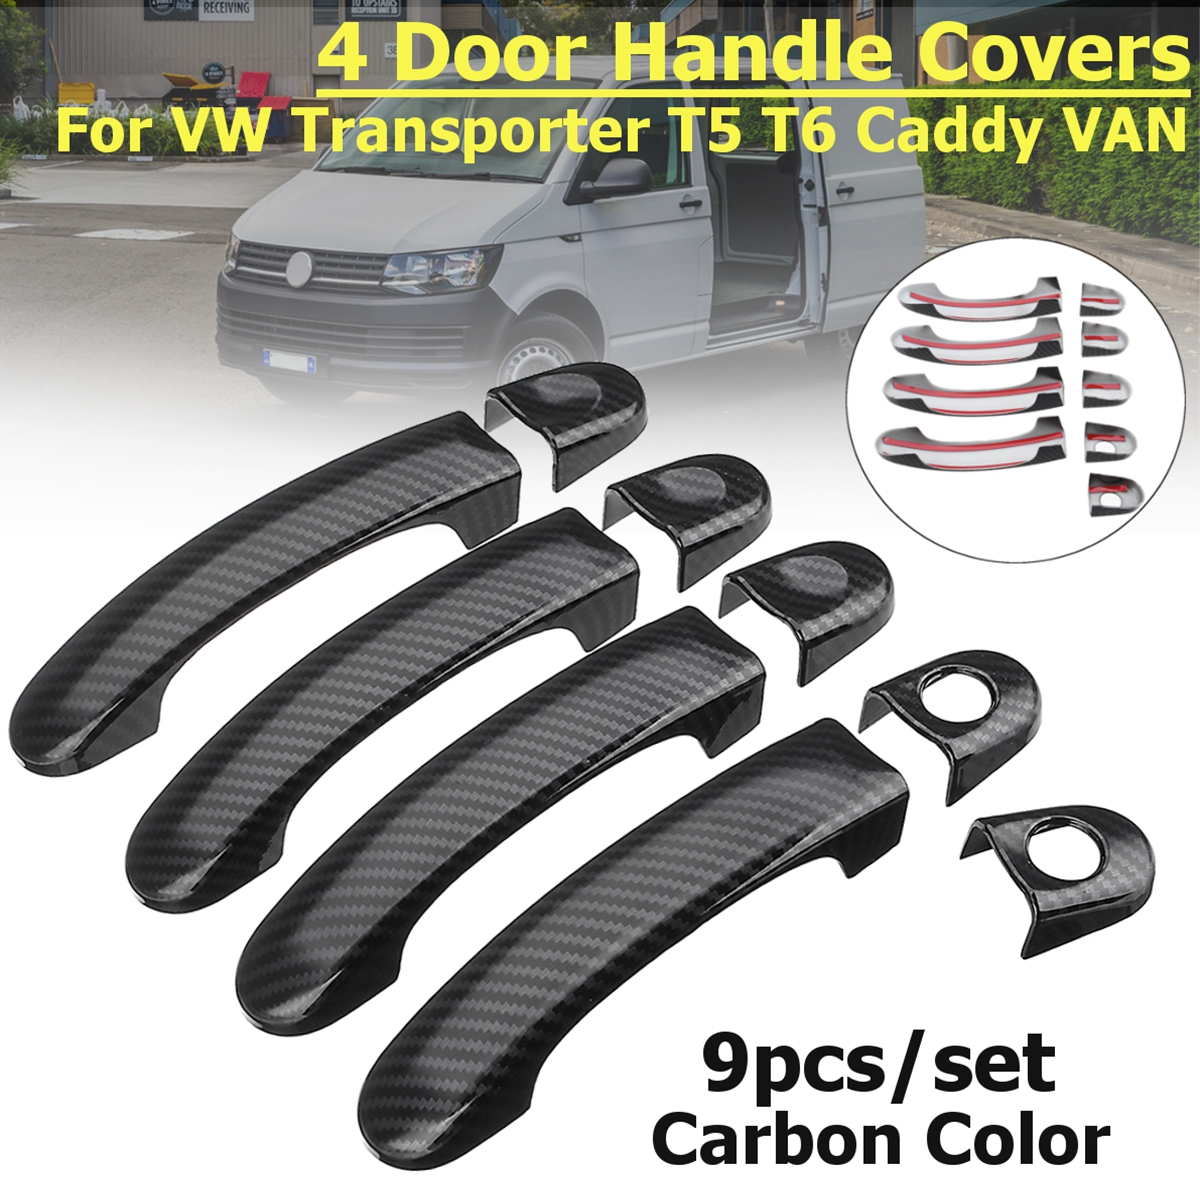 9pcs Set ABS Carbon Fiber Door Handle Covers Trim For VW TRANSPORTER for T5 2003-2015 for T6 2015-up for CADDY VAN 2004-2015